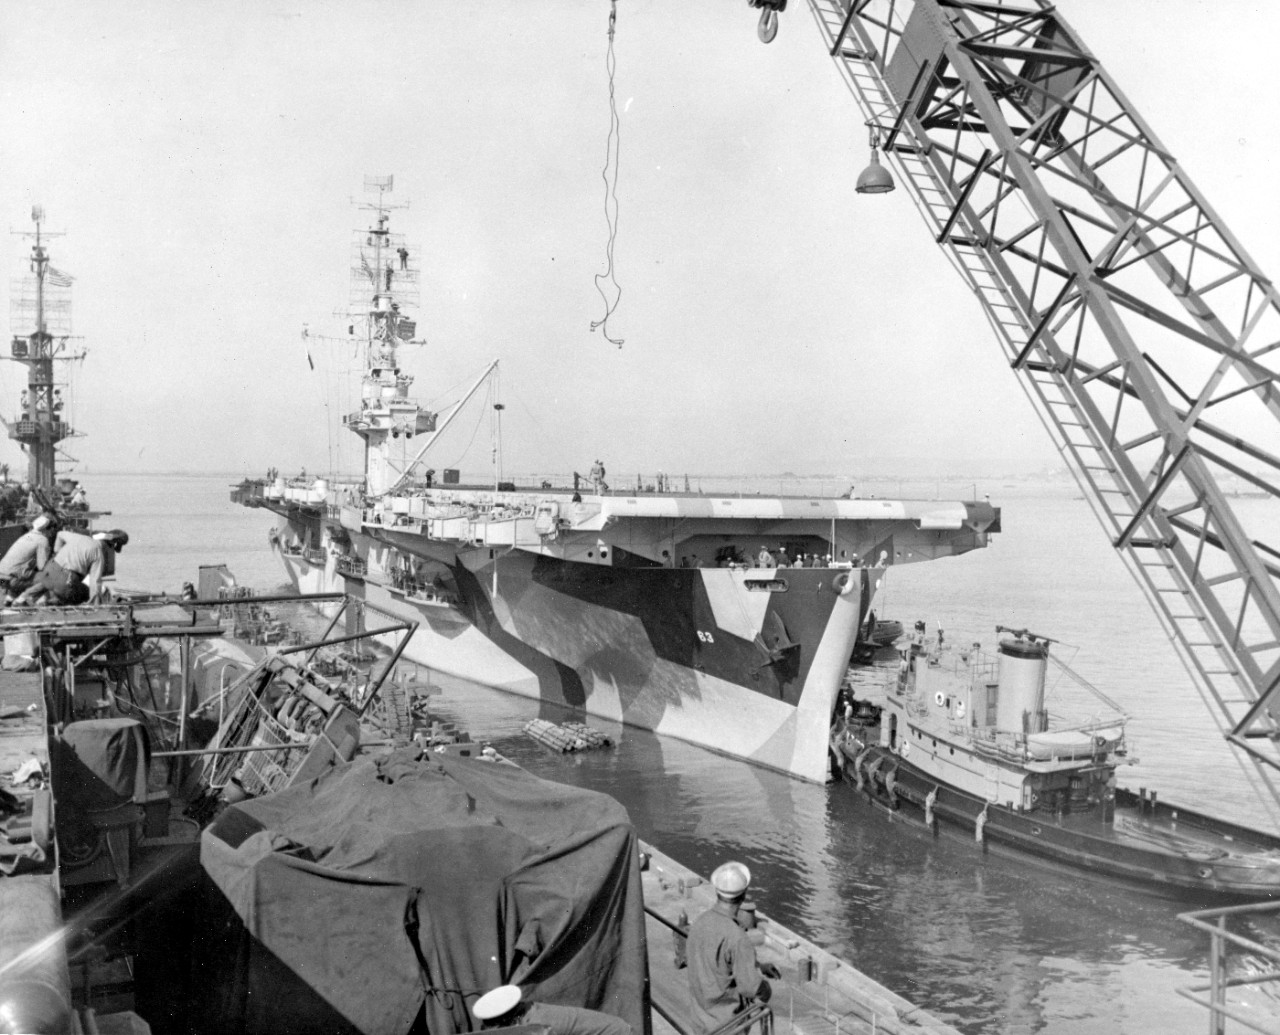 Midway, painted in a three-color disruptive camouflage, backs out of her berth at the Naval Repair Base, San Diego, following an availability there, assisted by harbor tugs, as seen from her sister ship White Plains (CVE-66), 10 April 1944. (U.S. Navy Photograph 80-G-384078, National Archives and Records Administration, Still Pictures Division, College Park, Md.)